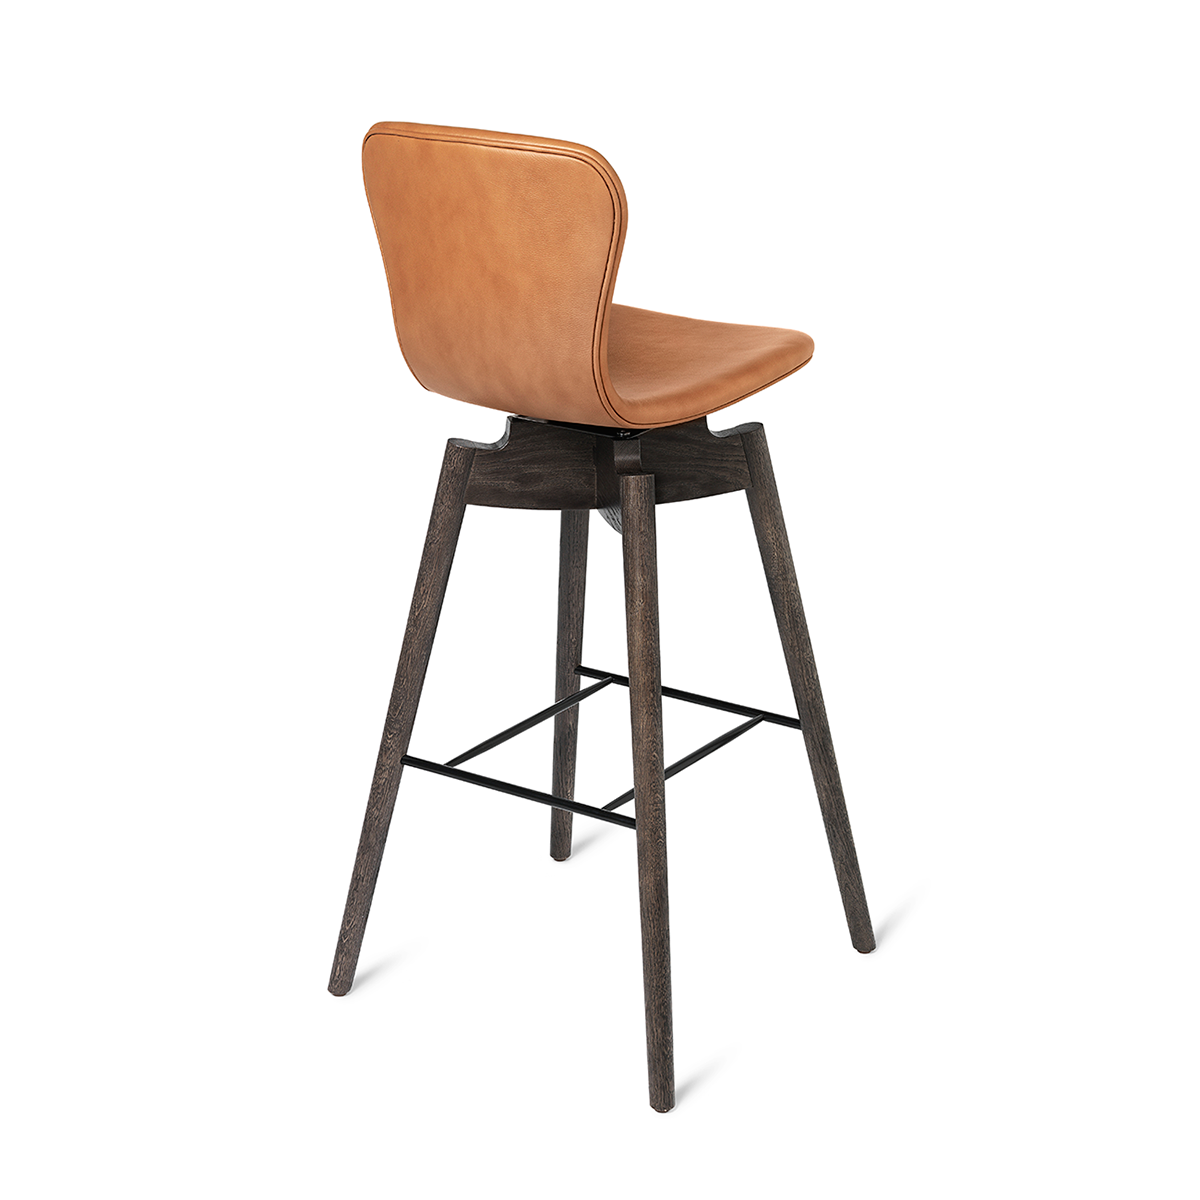 Mater Shell Bar Stool Wooden Leather Bar Stool in Oak 貝殼系列 橡木 高腳椅